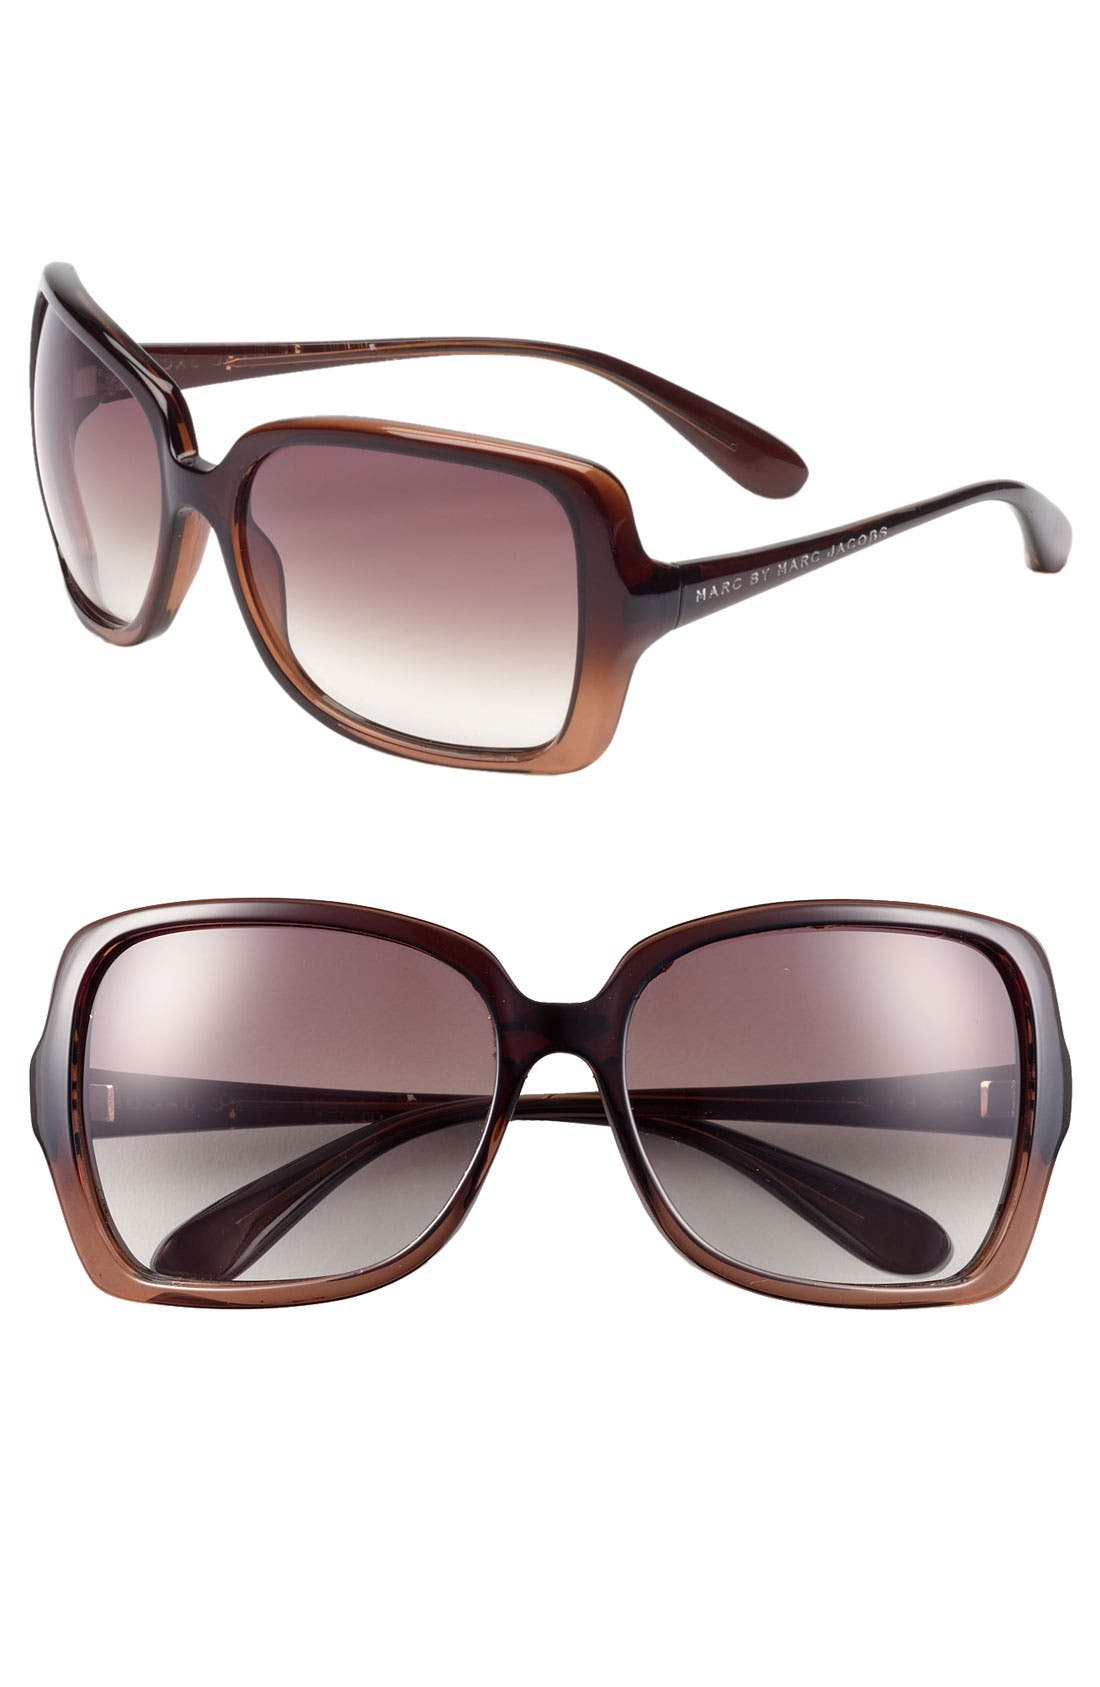 Main Image - MARC BY MARC JACOBS 59mm Vintage Inspired Oversized Sunglasses